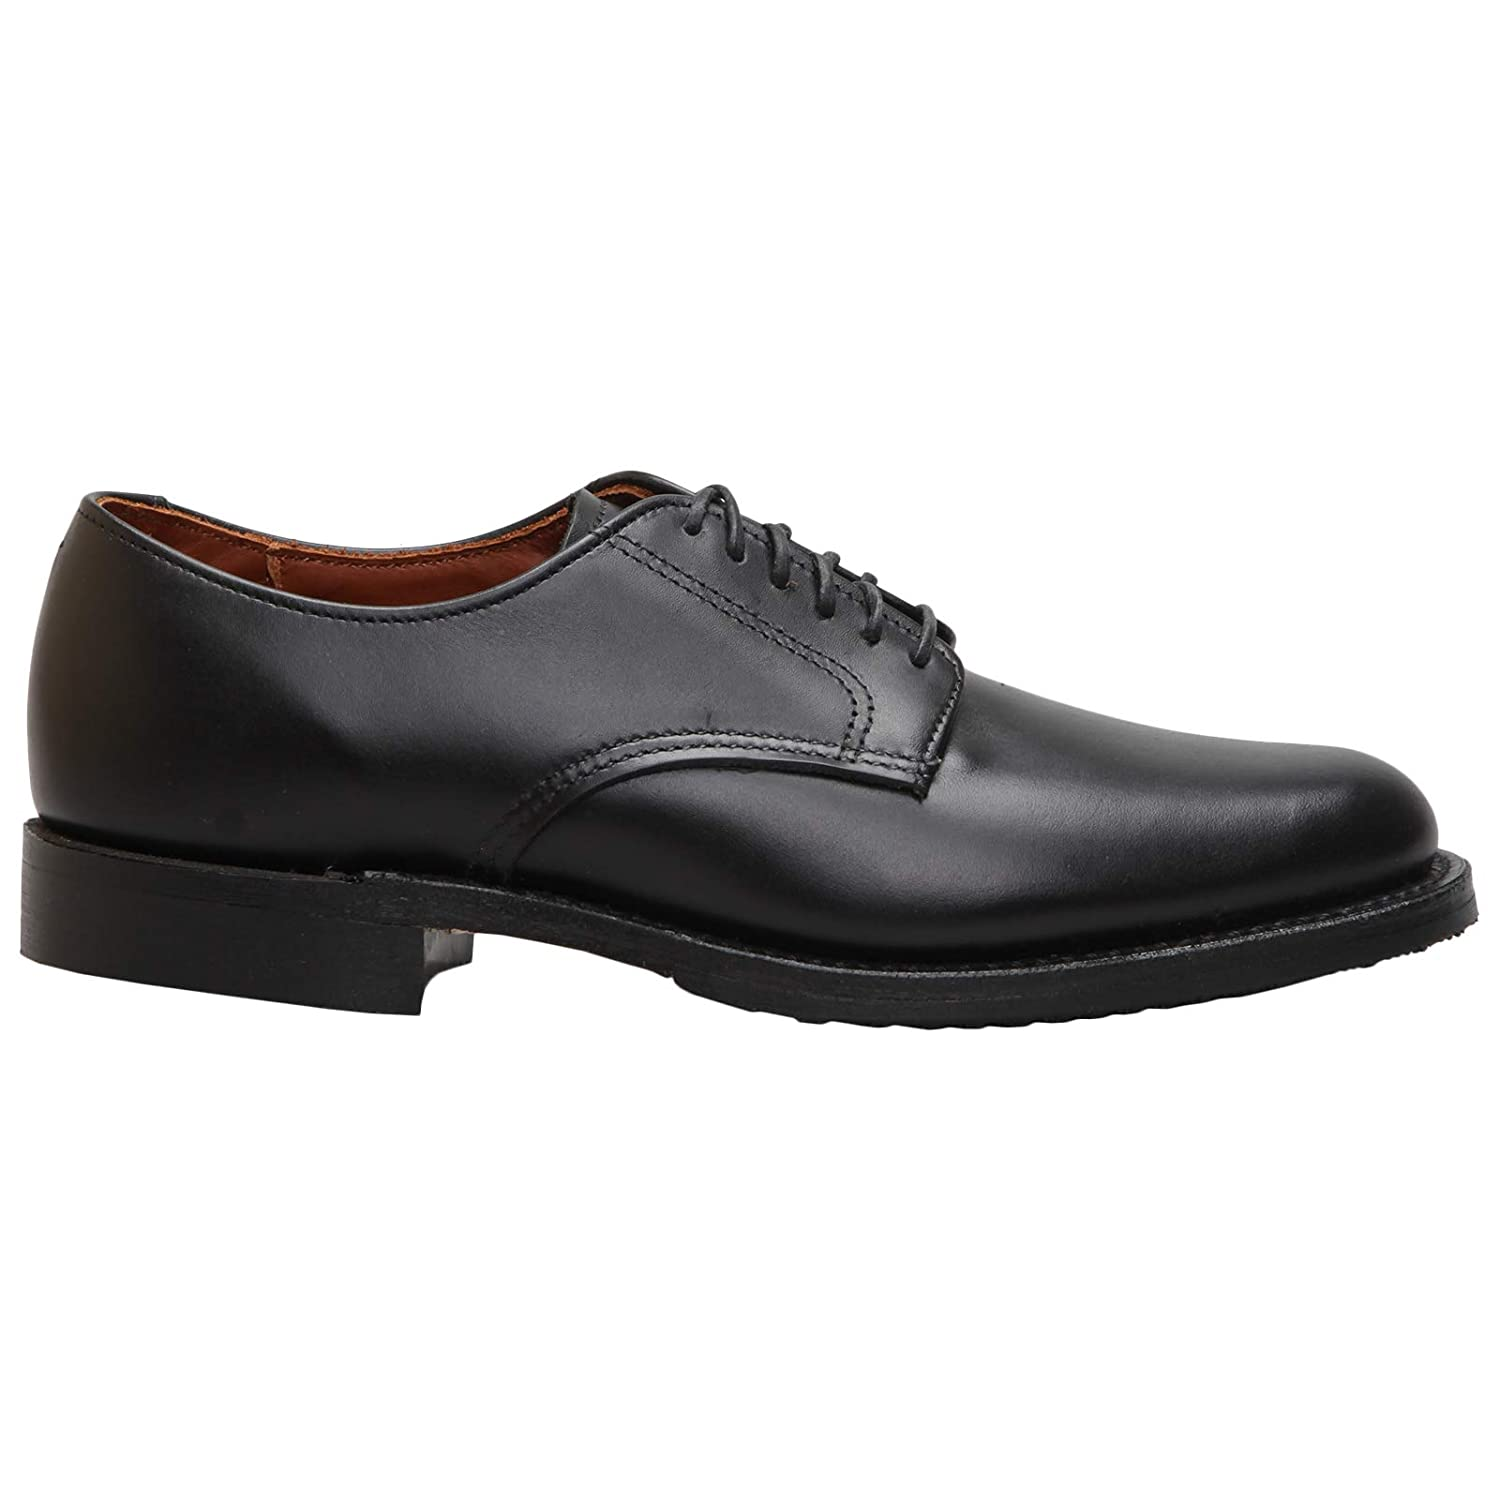 Red Wing Hombre Williston Oxford Cuero Black Zapatos 43 EU